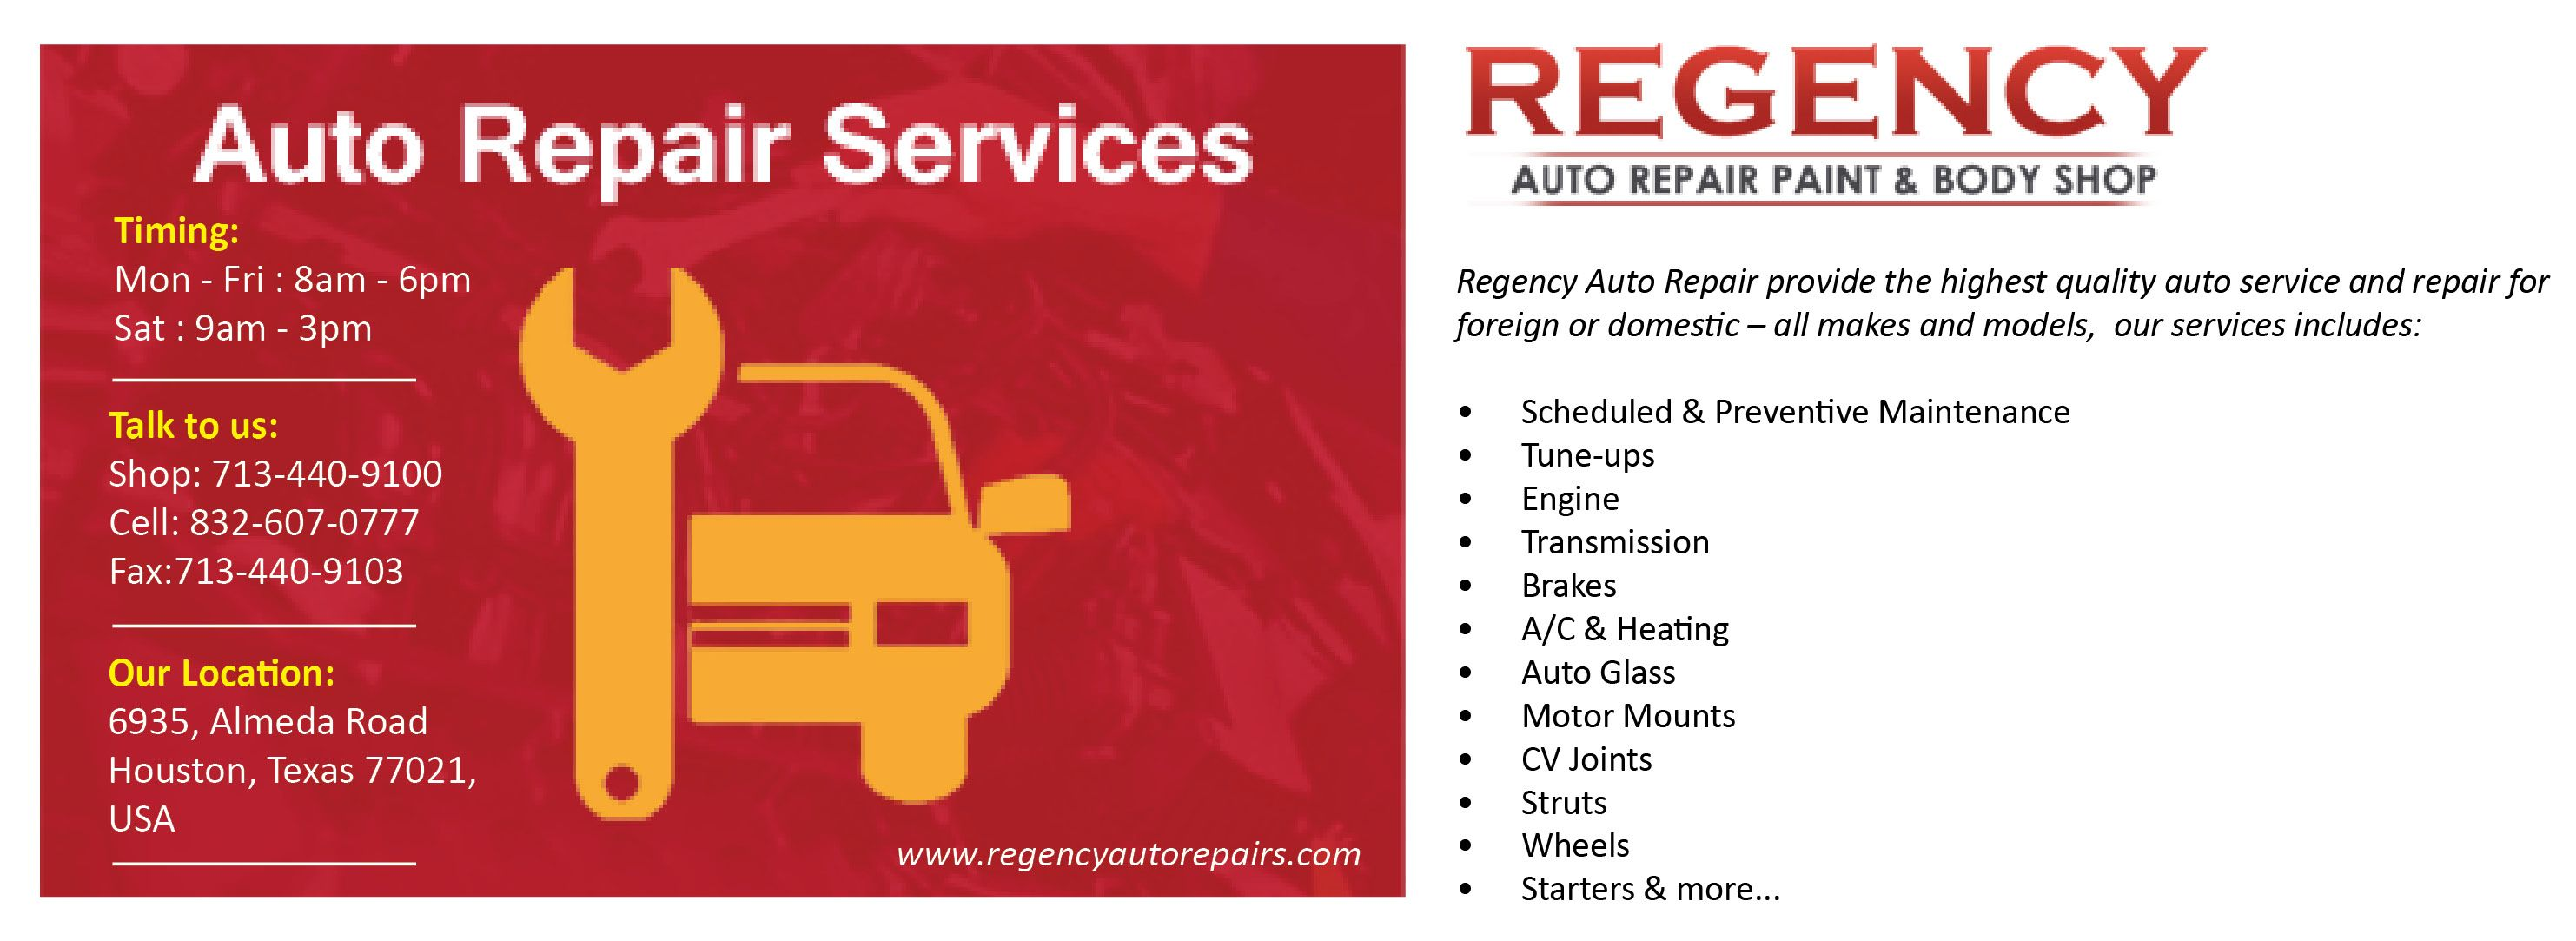 Regency Auto Repair Provide The Highest Quality Auto Service And